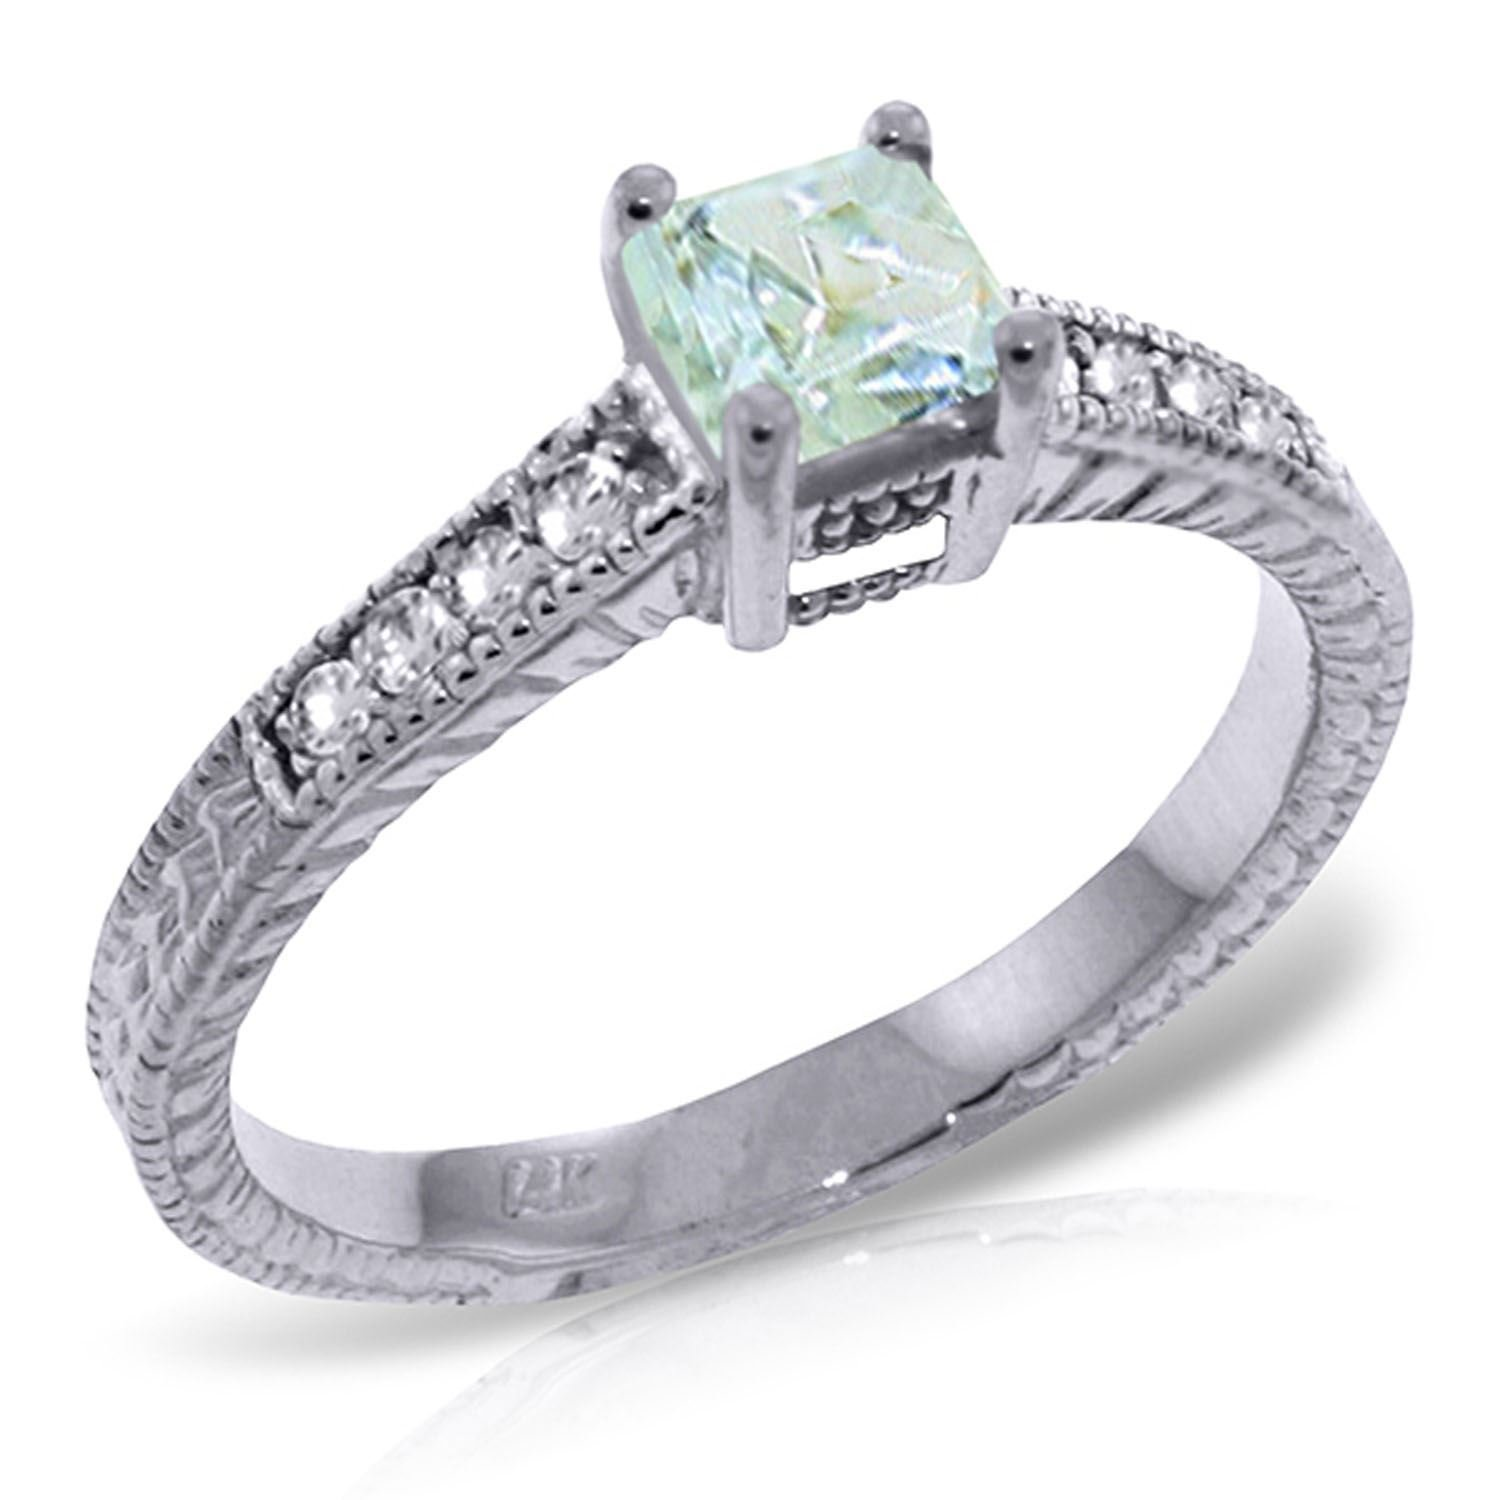 ALARRI 0.65 CTW 14K Solid White Gold Love For Granted Aquamarine Diamond Ring With Ring Size 9.5